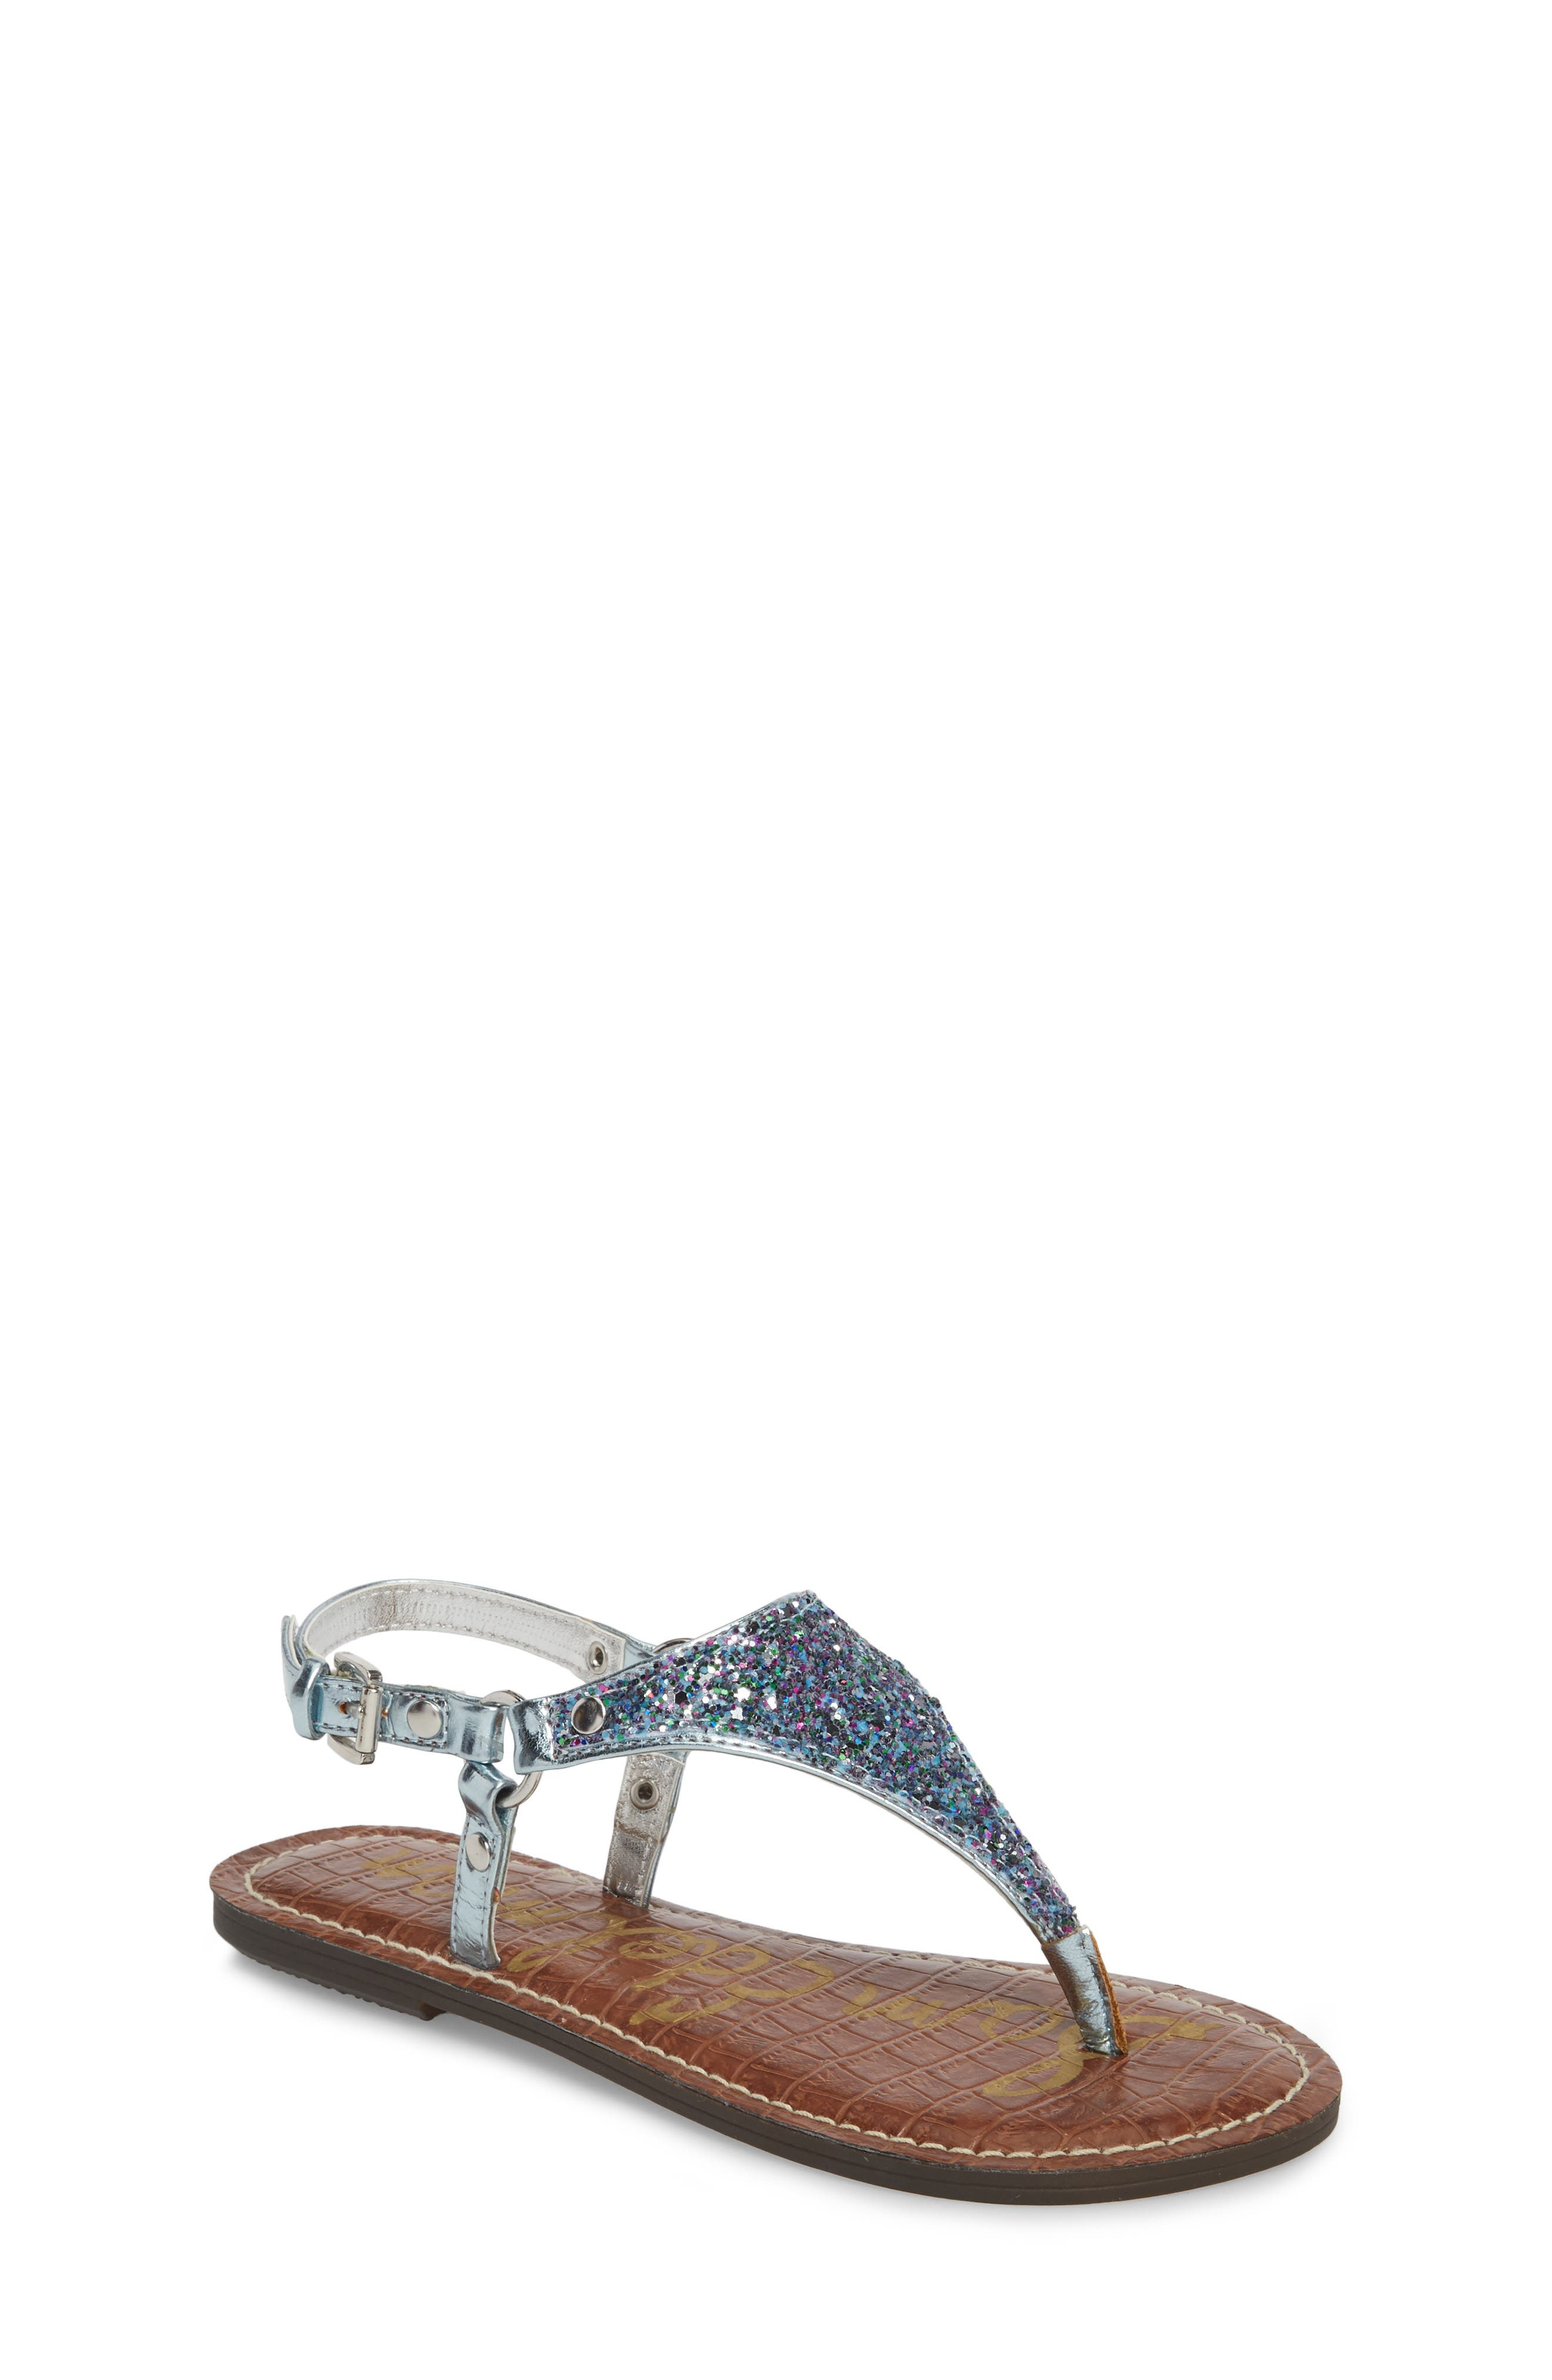 Gigi Greta Sandal,                         Main,                         color, 440